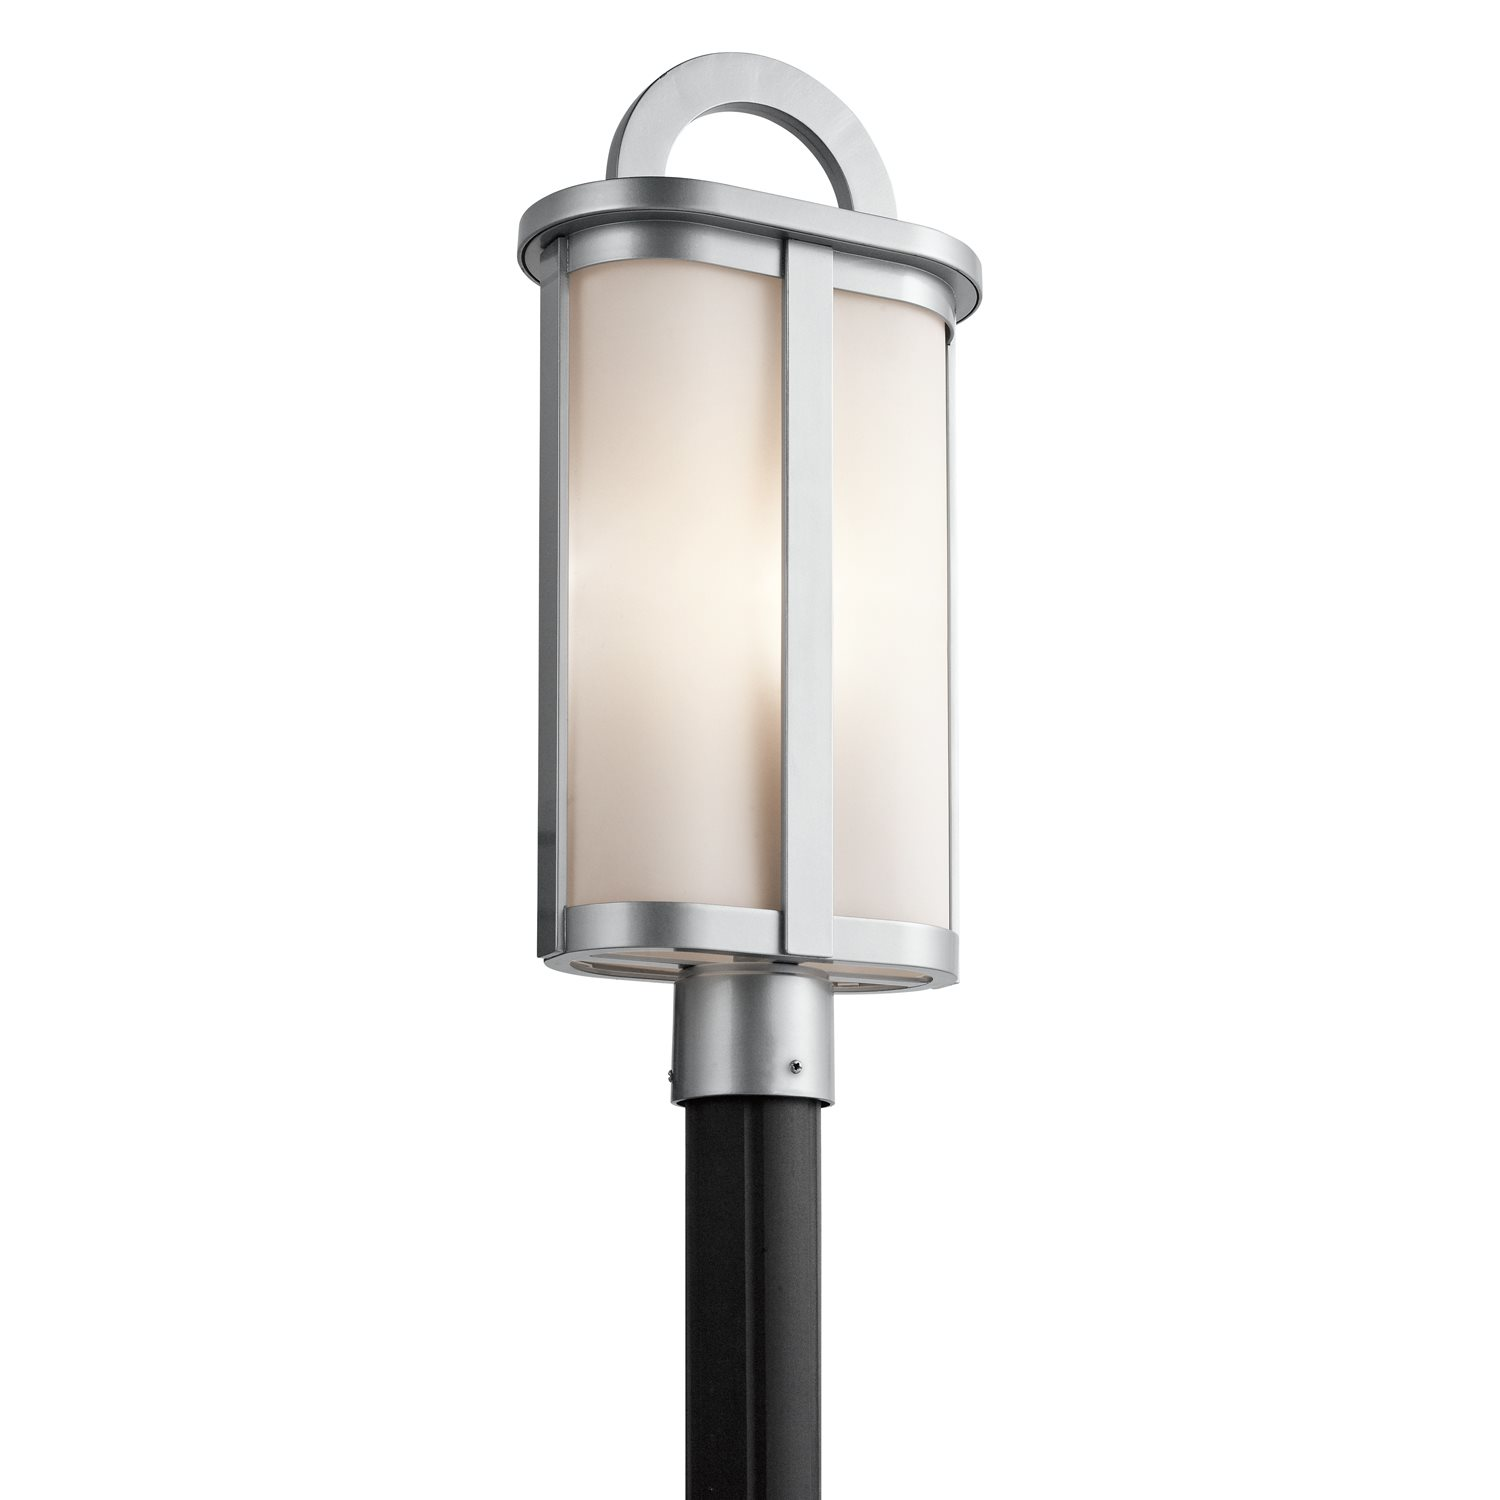 Kichler lighting 49471pl rivera modern contemporary for Contemporary outdoor post light fixtures